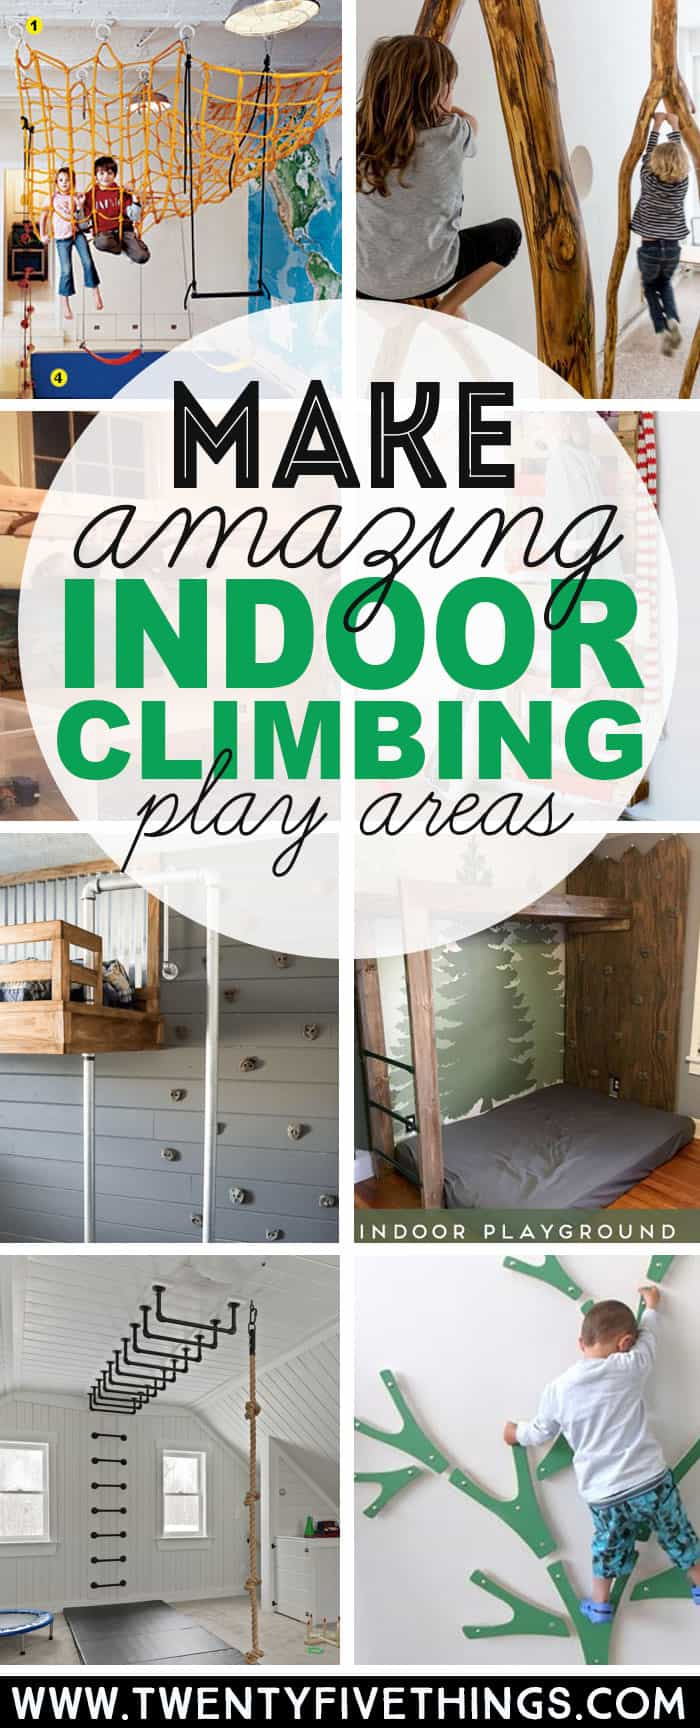 Keep kids active and challenged, even in bad weather, with these 14 DIY Climbing Spaces for Kids Indoor Play. I know my kids end up climbing the walls anyway when they've been cooped up inside for too long. I can easily add a climbing wall in a bedroom or hallway. Lots of great ideas here. #climbing #kidsactivities #DIY #indooractivities #play